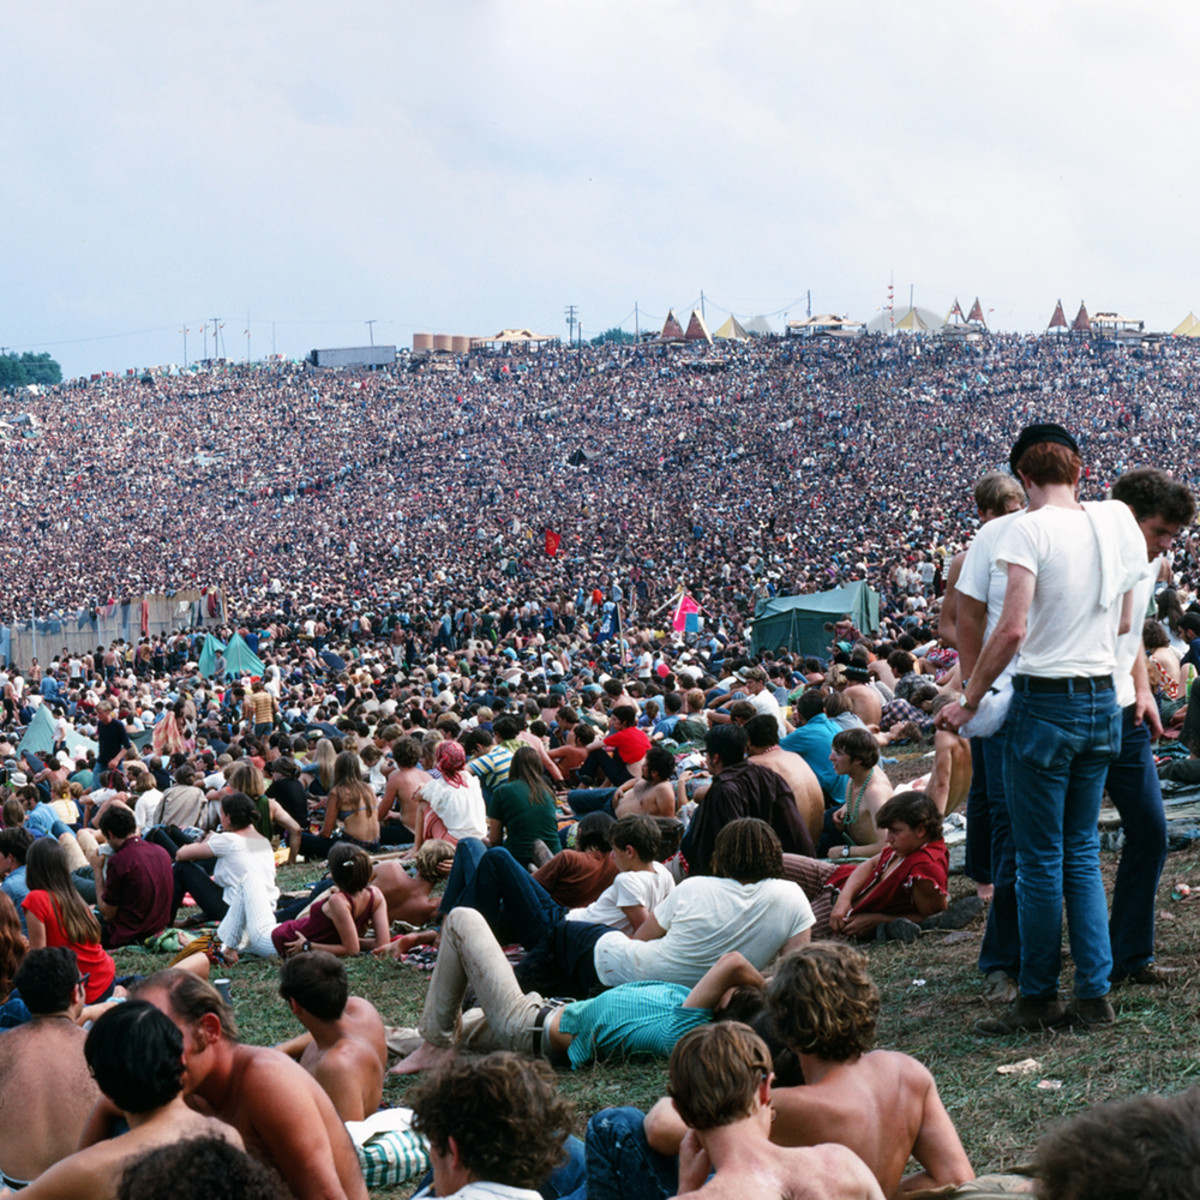 Panorama woodstock crowd 10x4 u7wibv